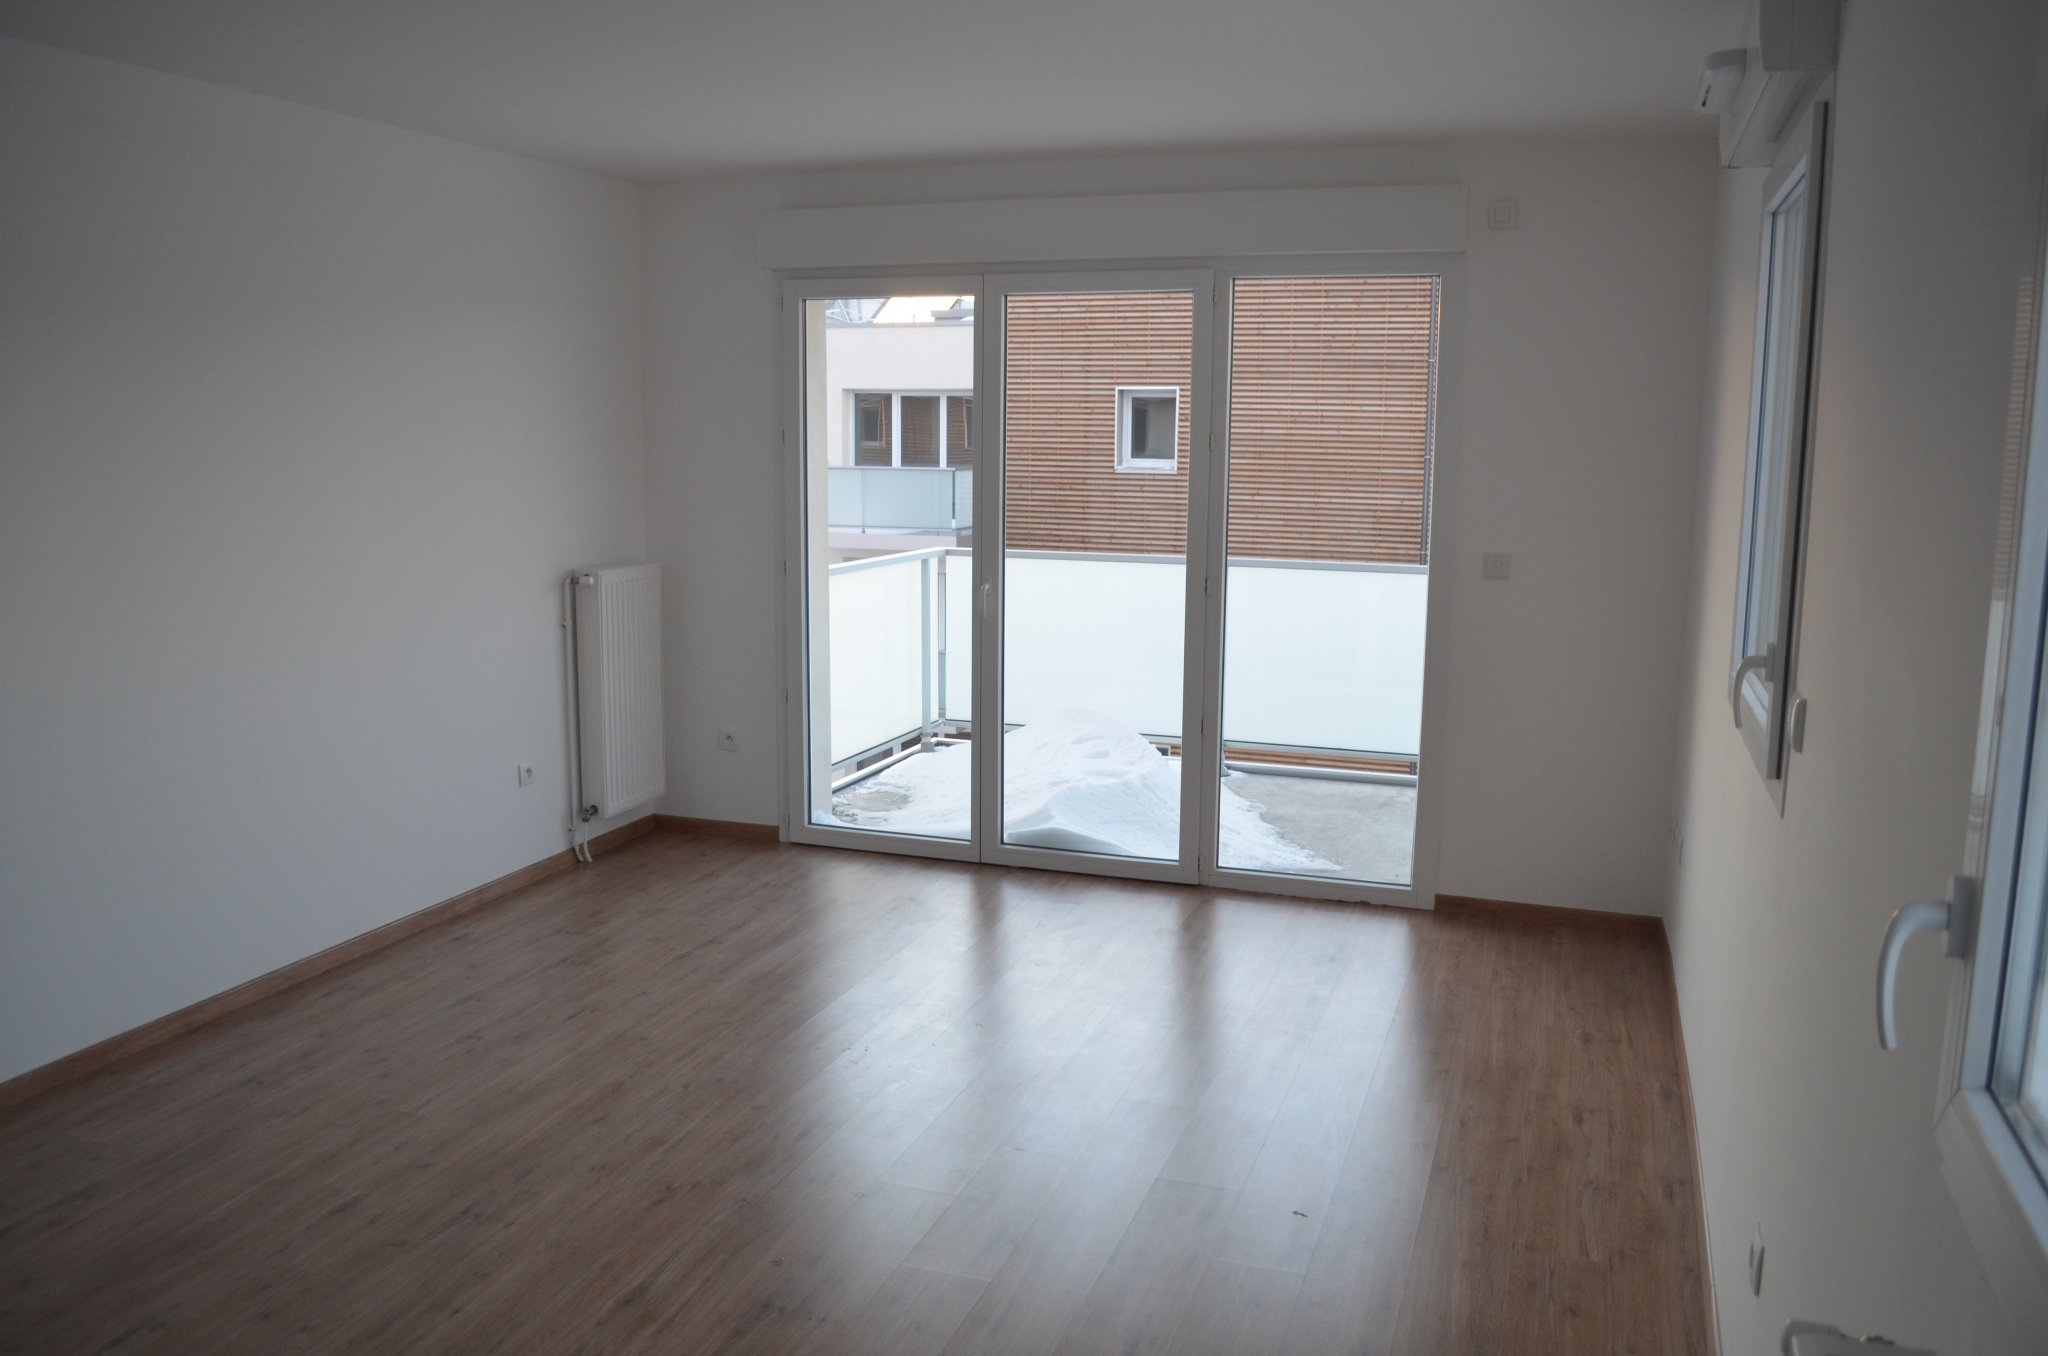 Appartement – T2 – 45,2m2 – WAMBRECHIES